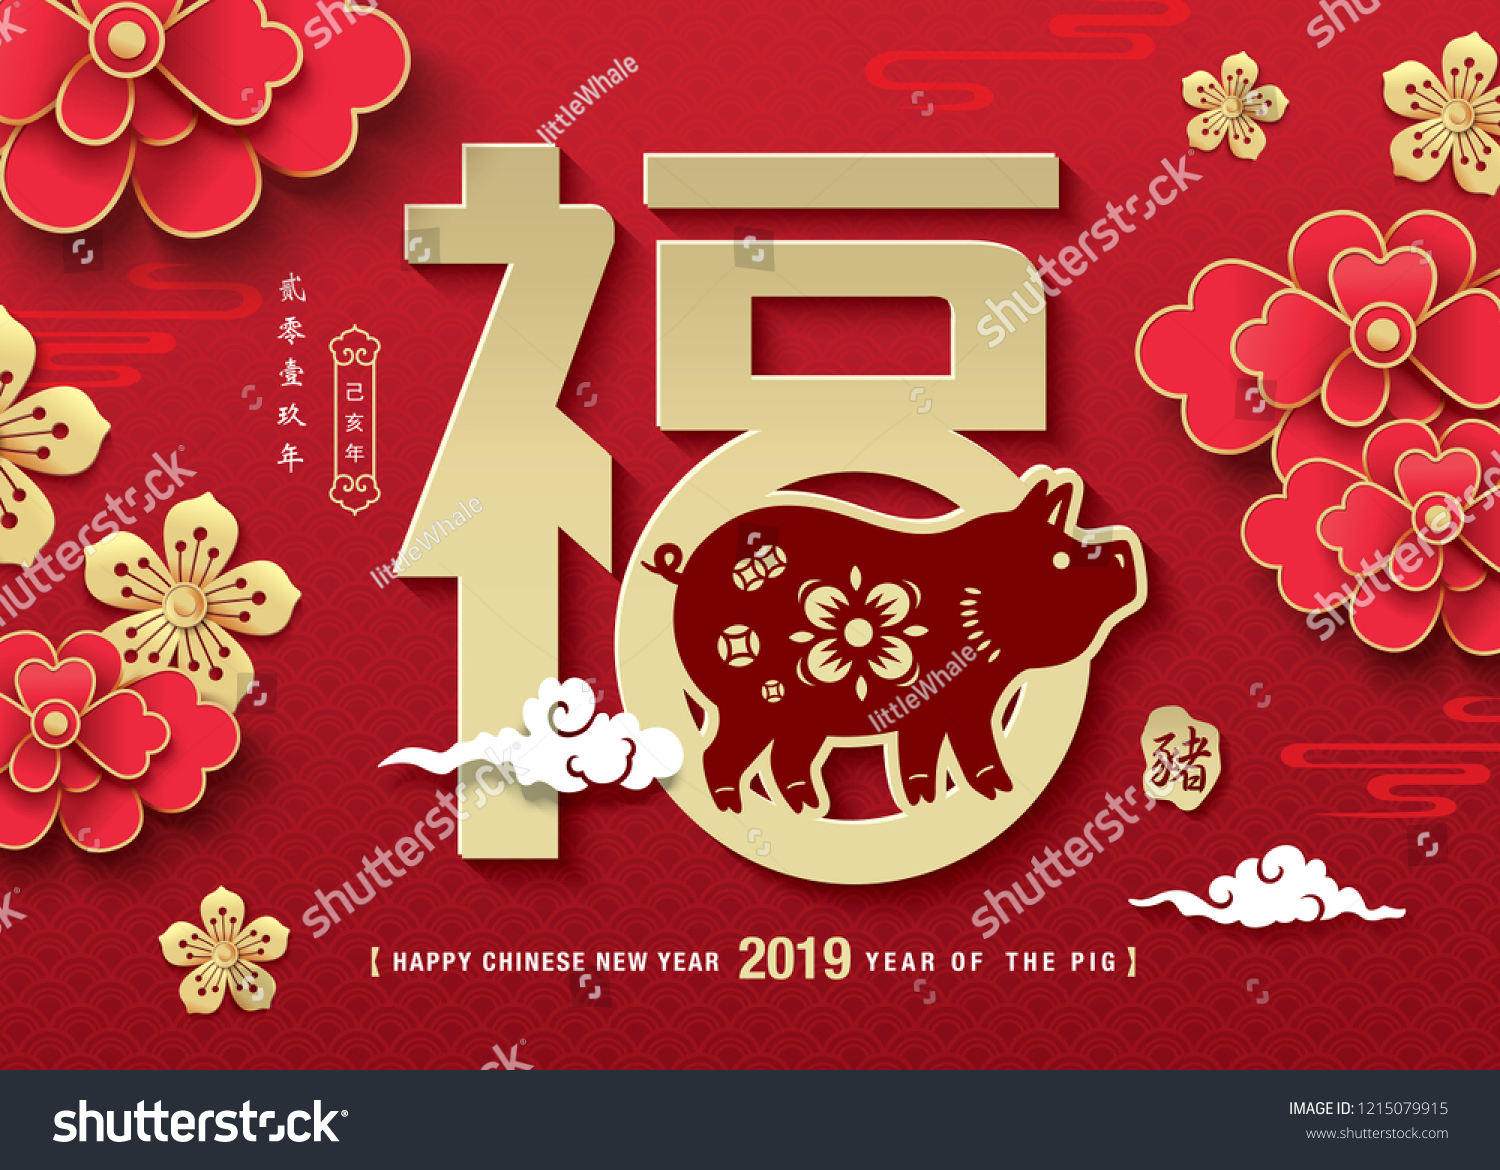 Chinese Dierenriem 2019 Chinese New Year 2019 Greeting Design Stockvector Rechtenvrij